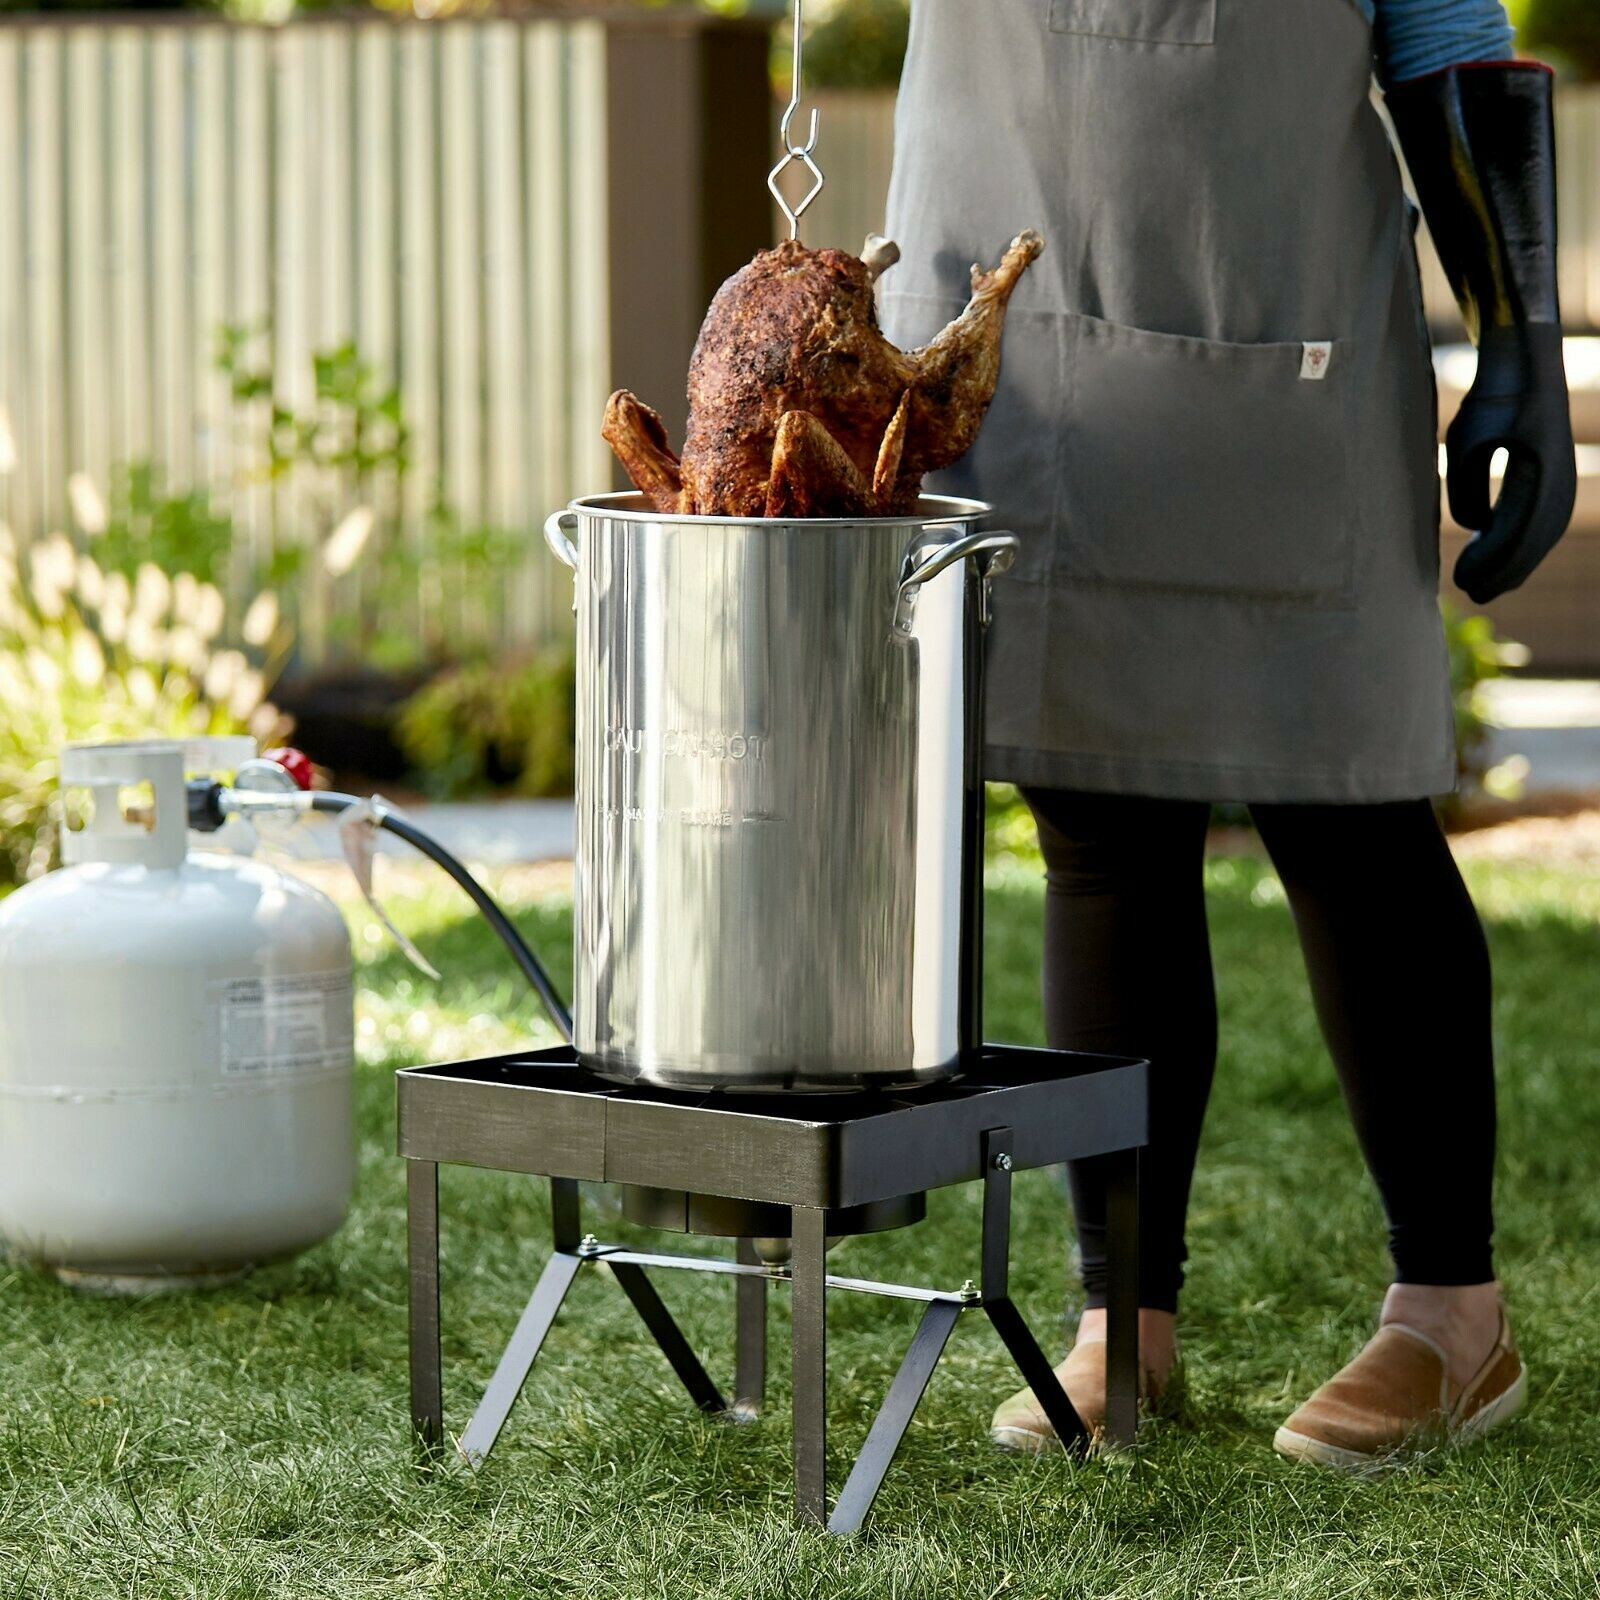 30 Qt. Turkey Fryer Kit Stainless Steel Stock Pot and Access